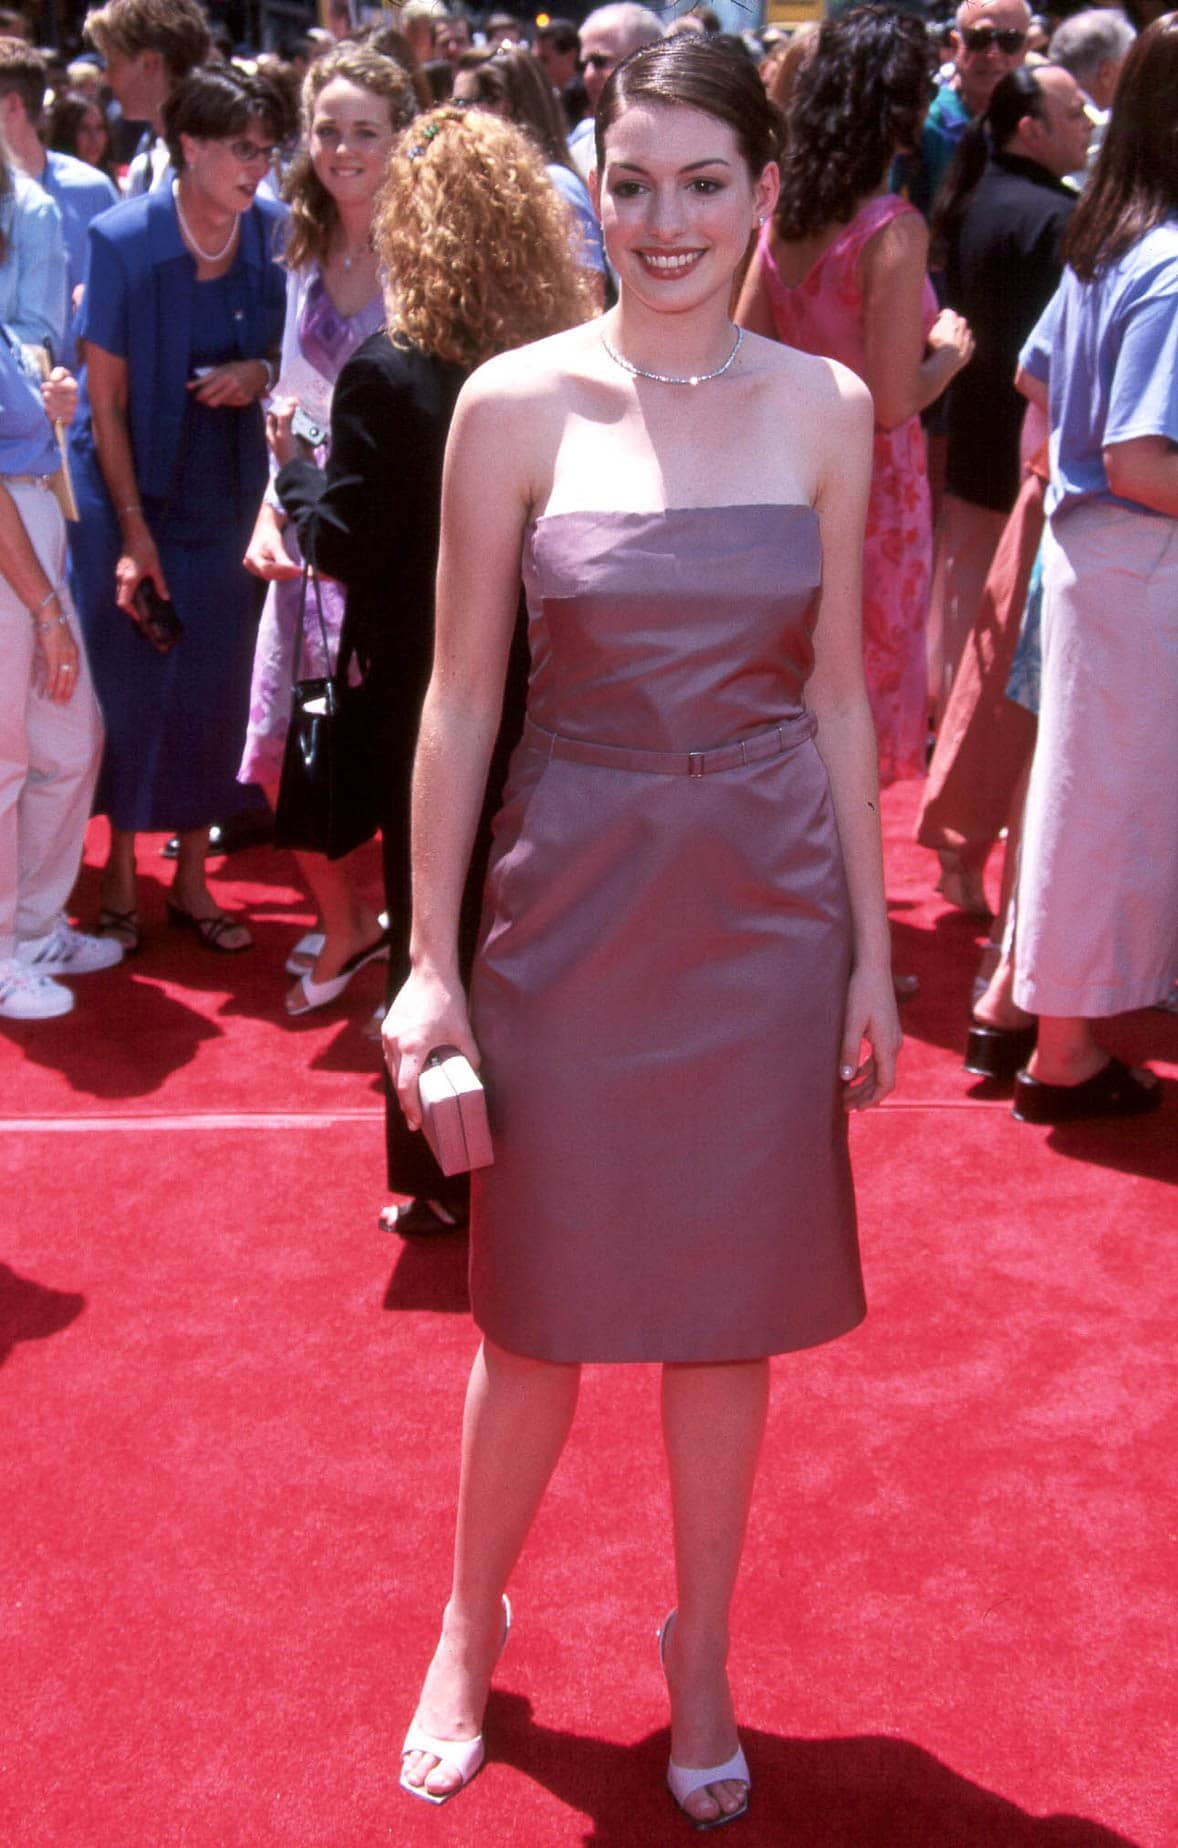 18-year-old actress Anne Hathaway arrives for the world premiere of The Princess Diaries